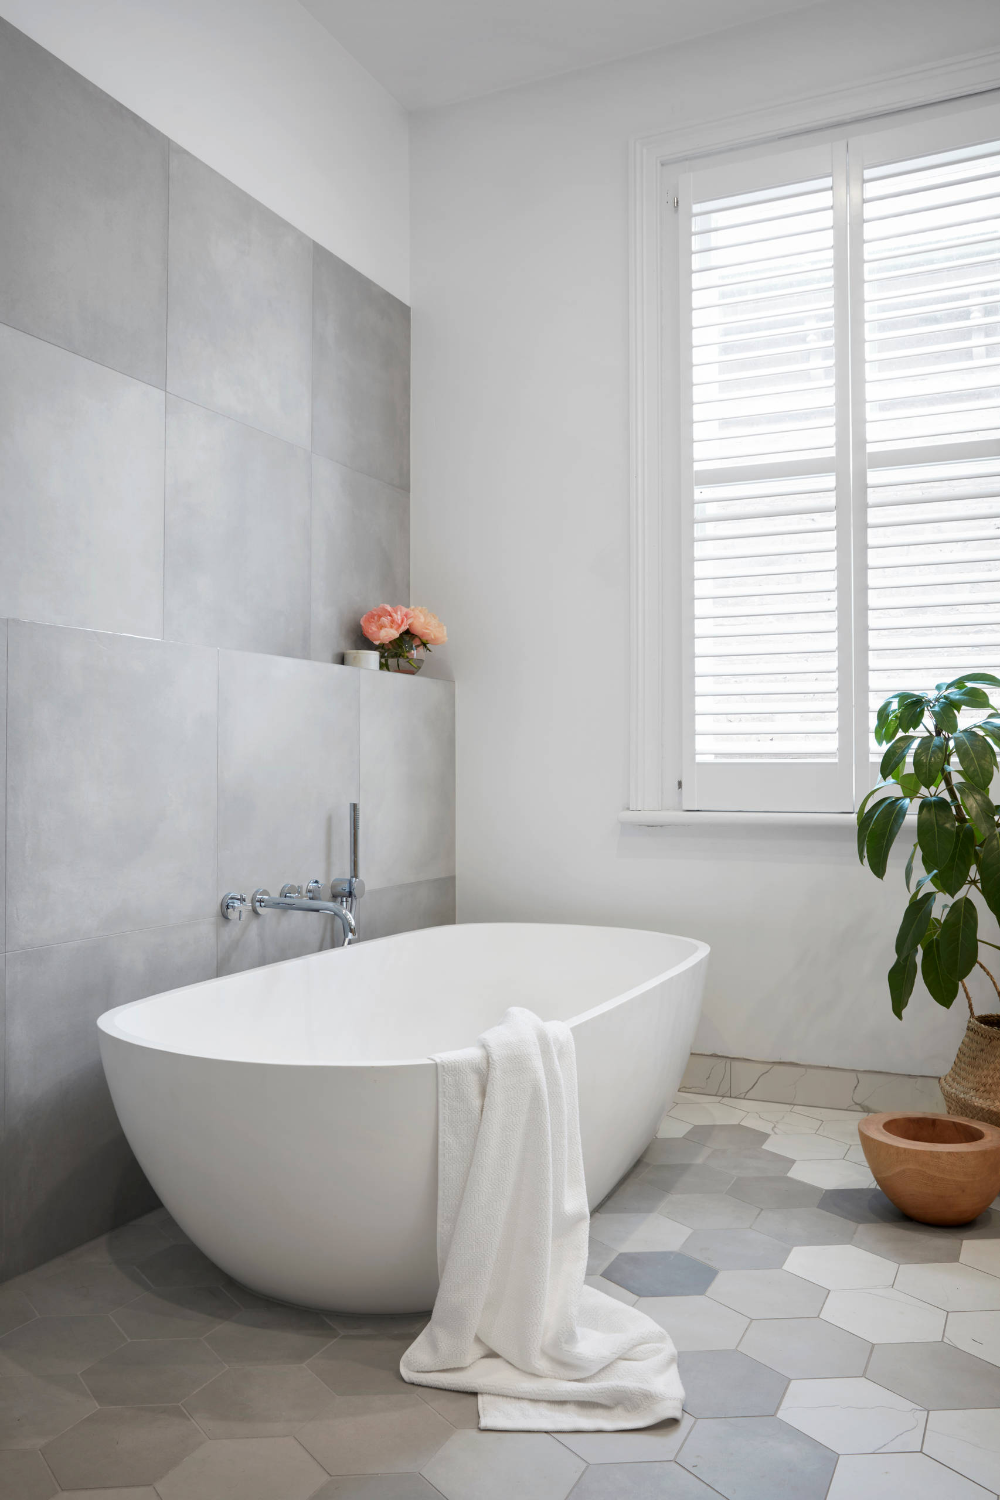 moonee ponds home main bathroom contemporary on bathroom renovation ideas melbourne id=57021